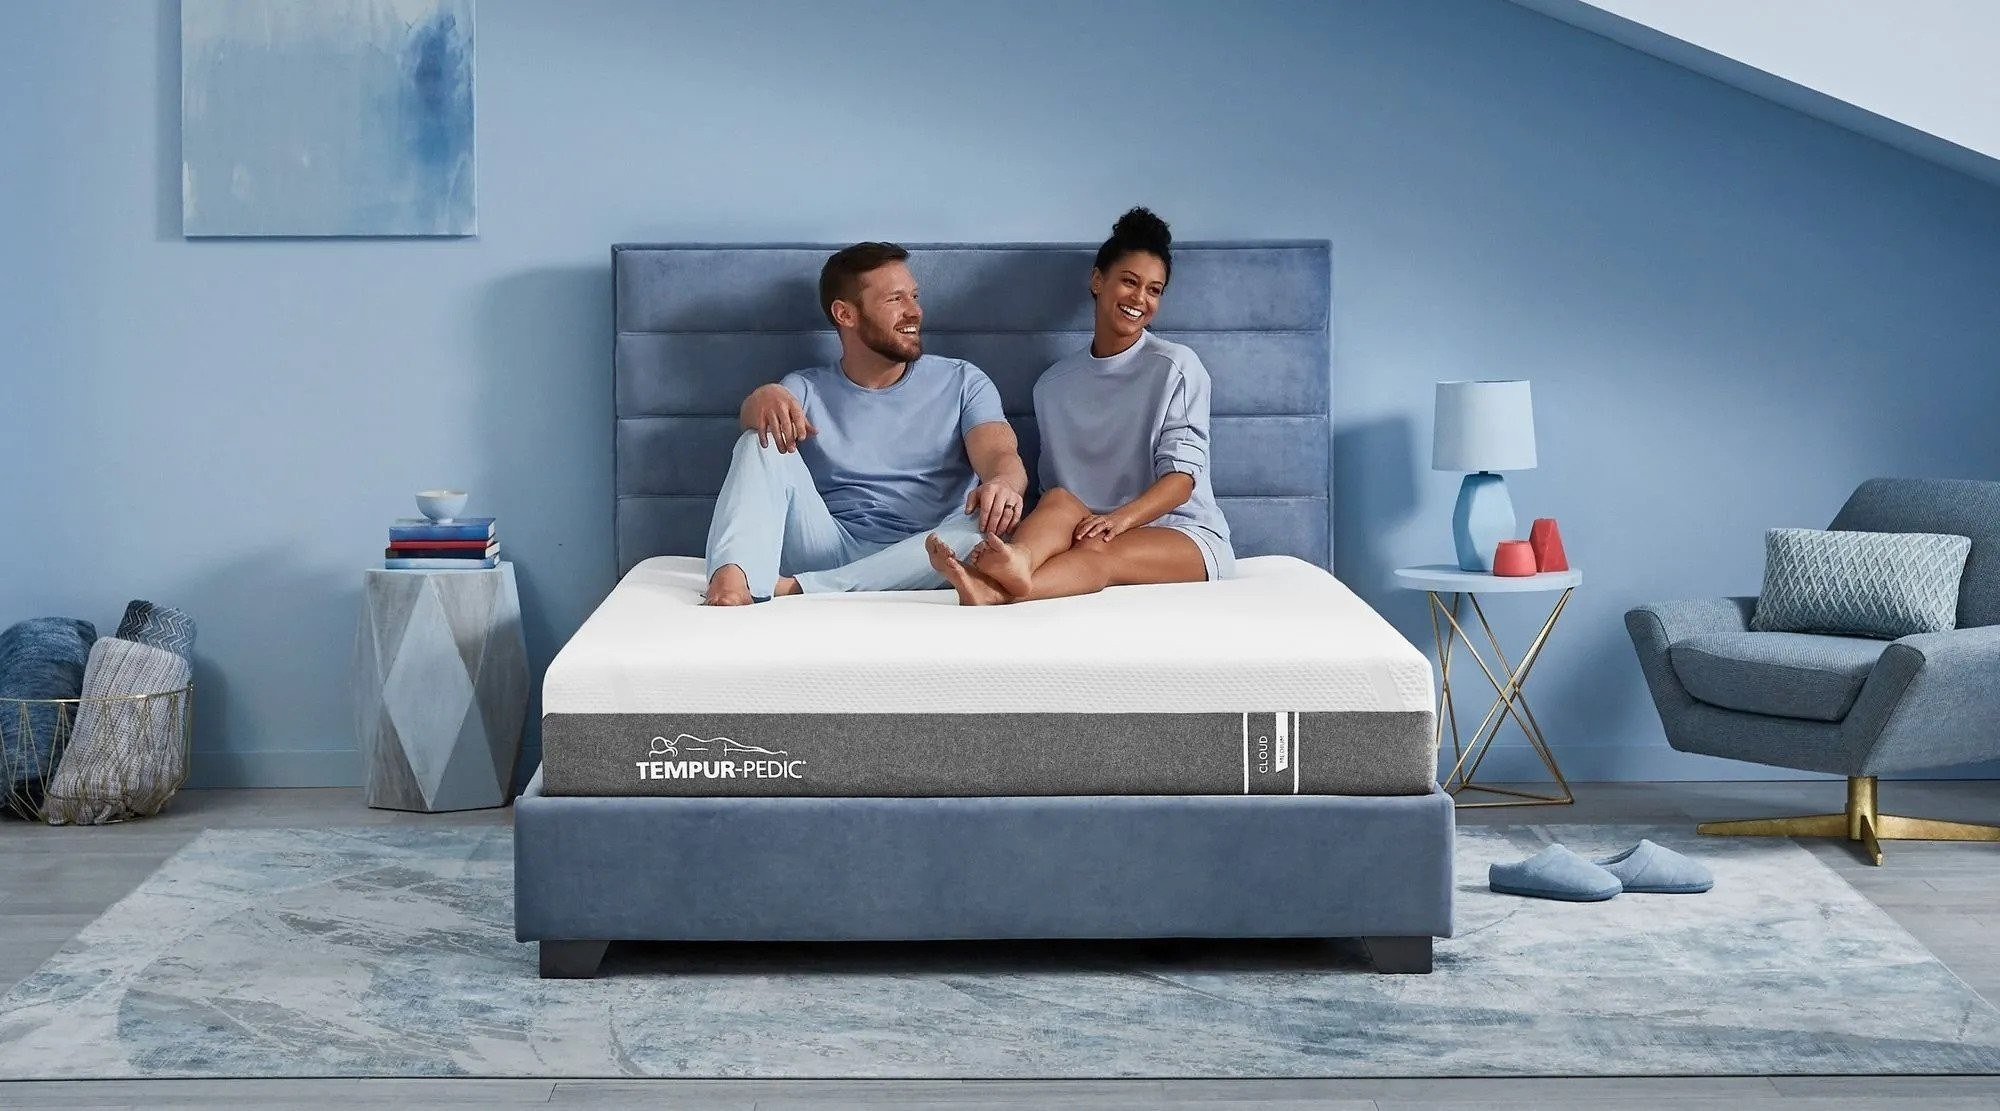 Two models sitting in a bad atop a Tempur-pedic mattress